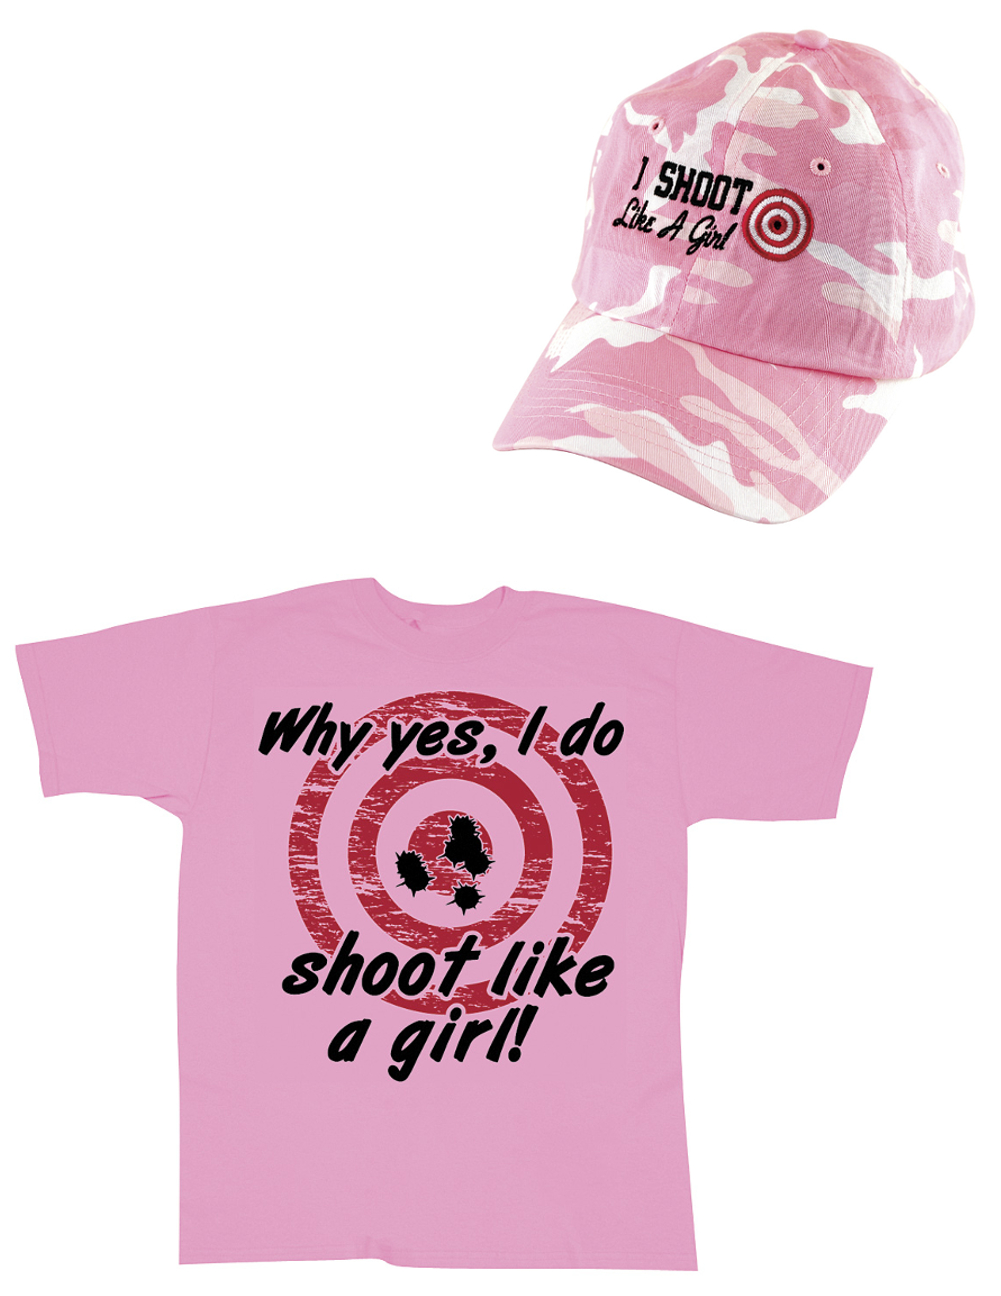 Closeout Zone (Set) I Shoot Like A Girl Baseball Cap & Lady Marksman Bullseye Pink Tee SM at Sears.com